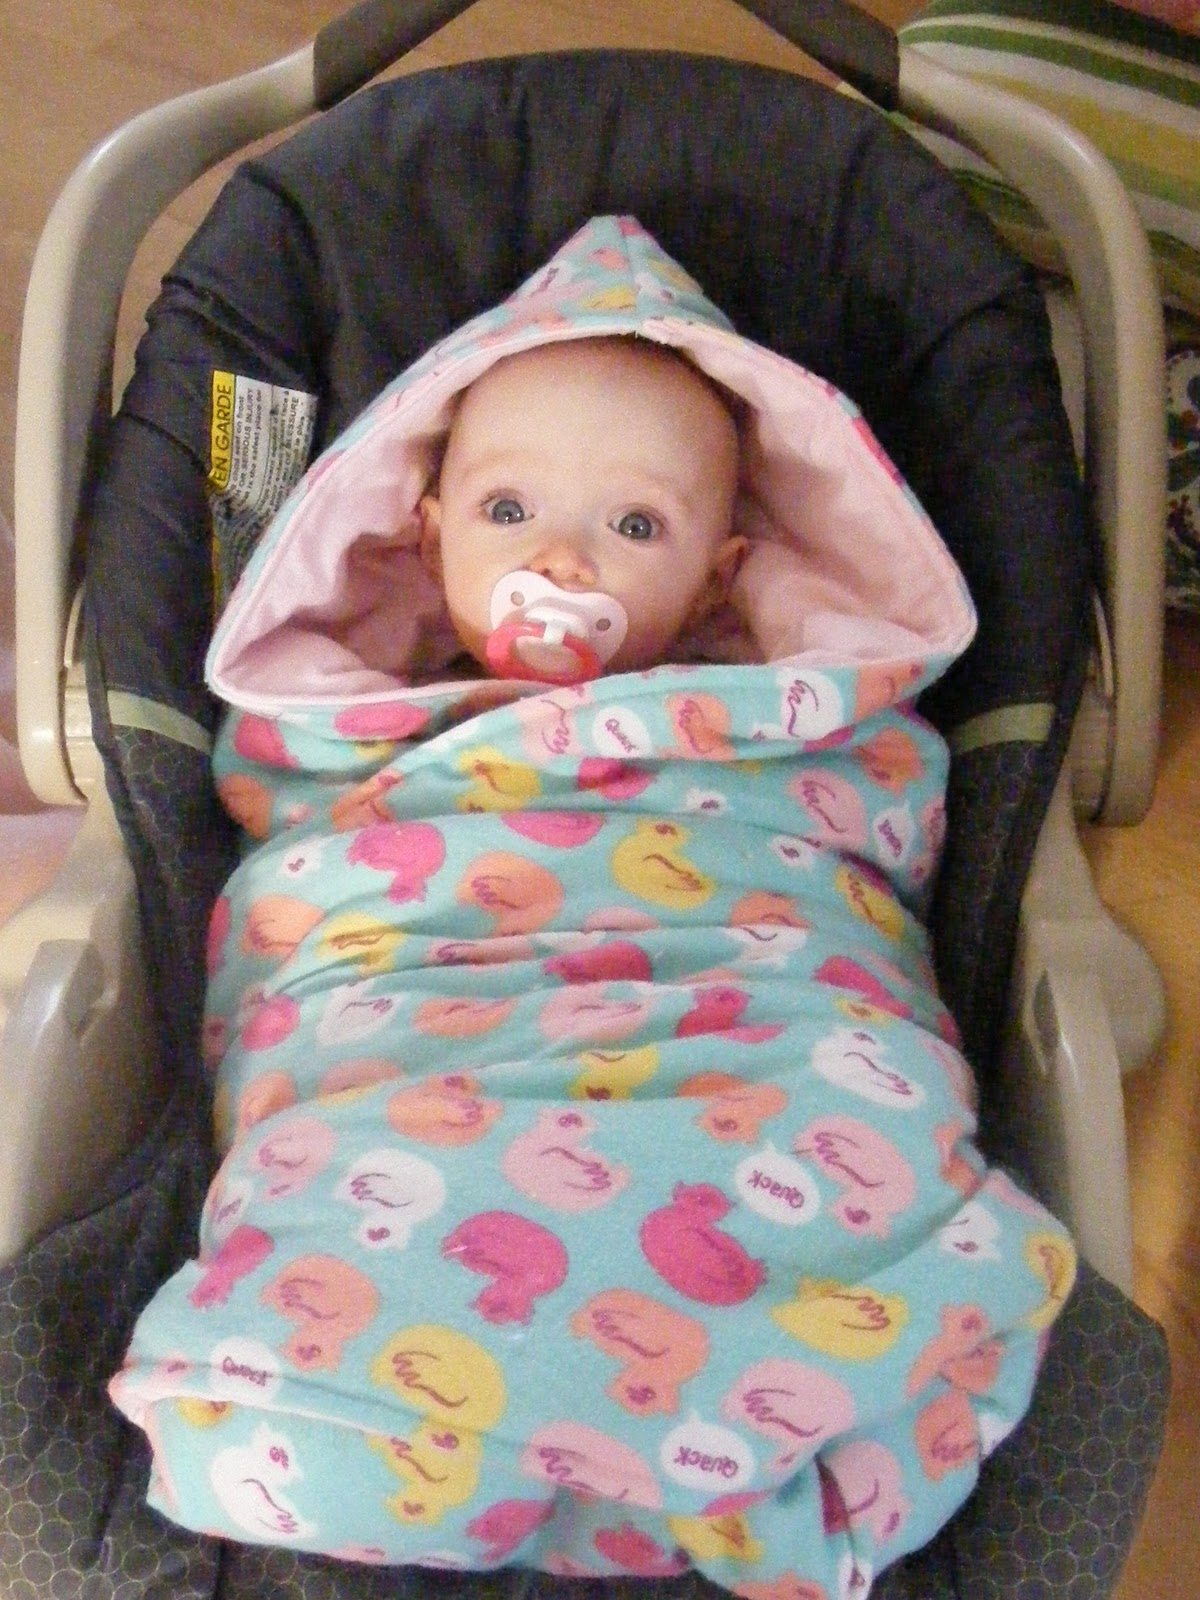 Baby Car Seat Blanket Free Pattern Tutorial Hooded Car Seat Blankies The Complete Guide To